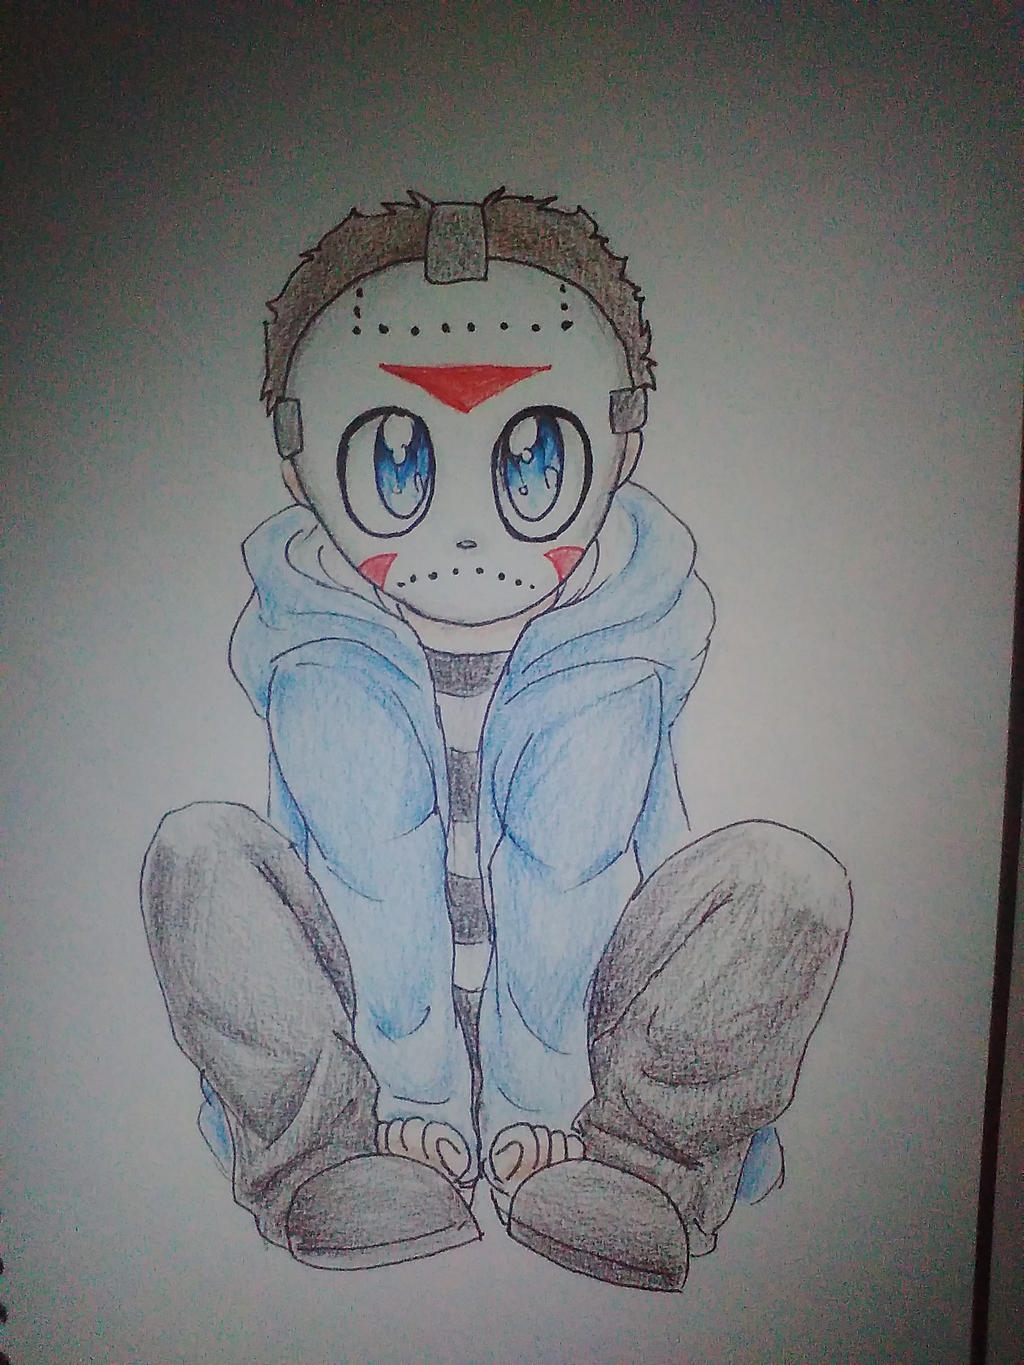 H2o delirious fan art by lucyvalkrie19 on DeviantArt H2o Delirious Drawings